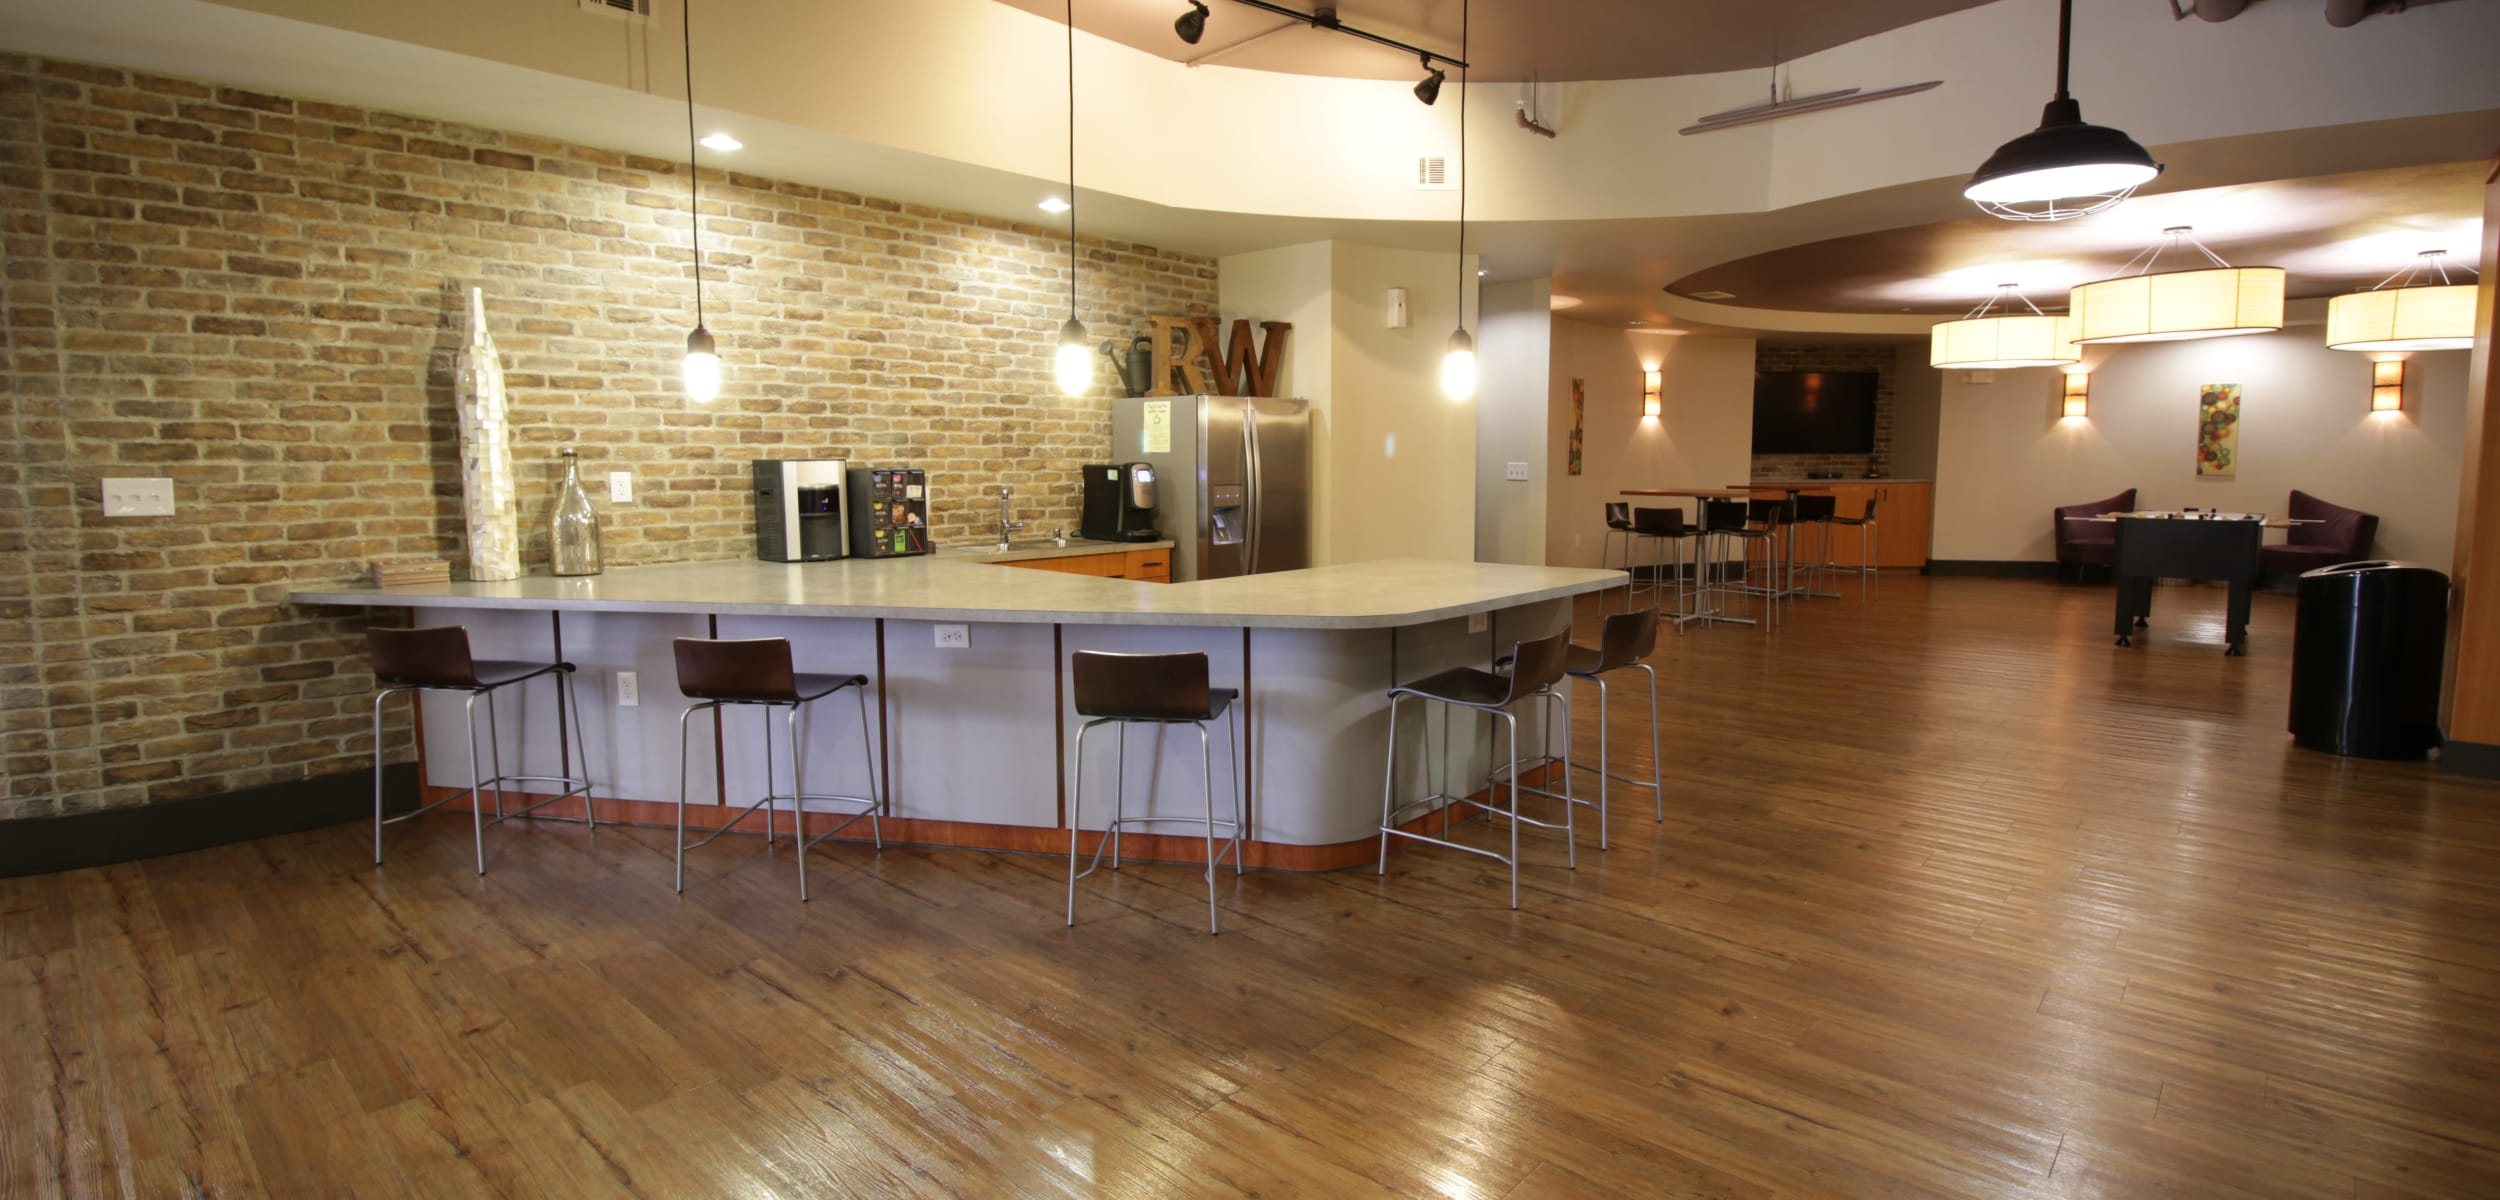 Regents West at 26th's community kitchen in Austin, Texas